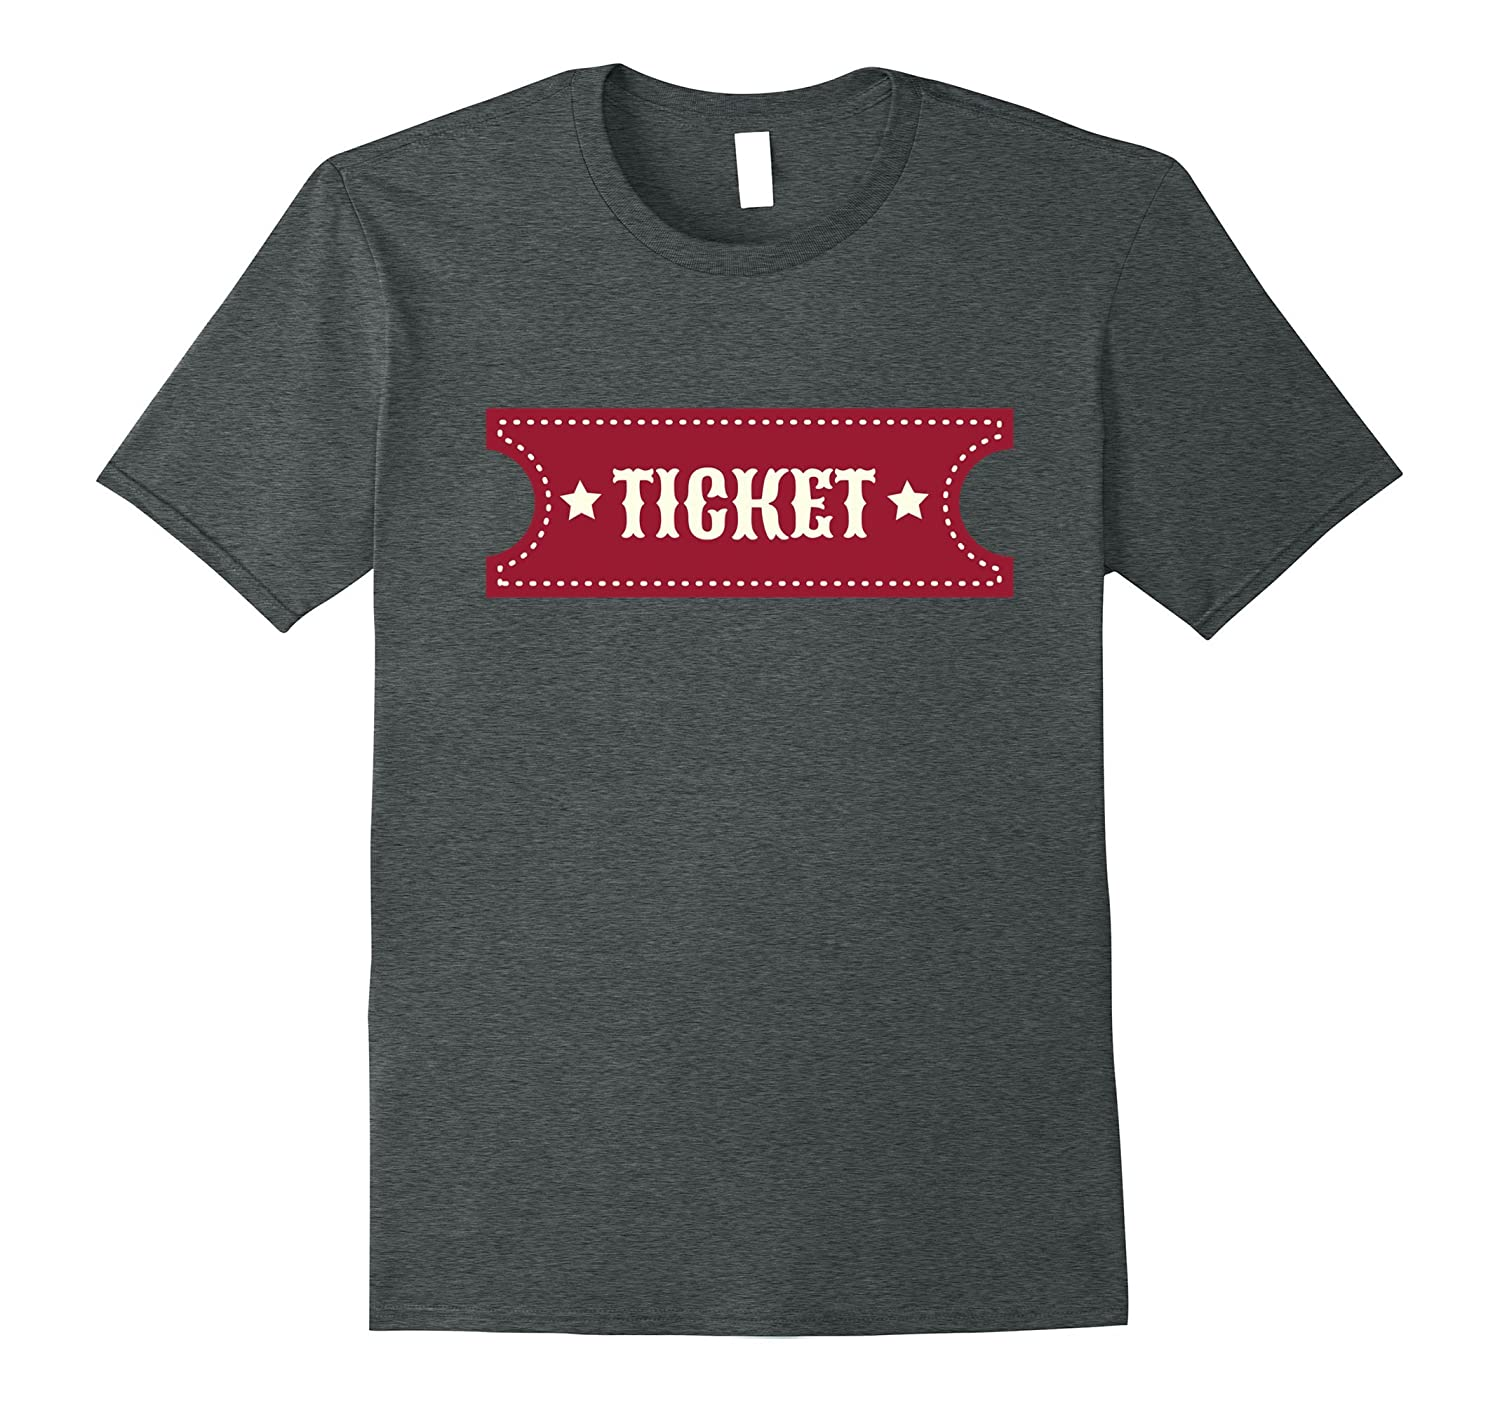 Carnival Circus Admission Ticket Shirt - Prizes Admit-Vaci